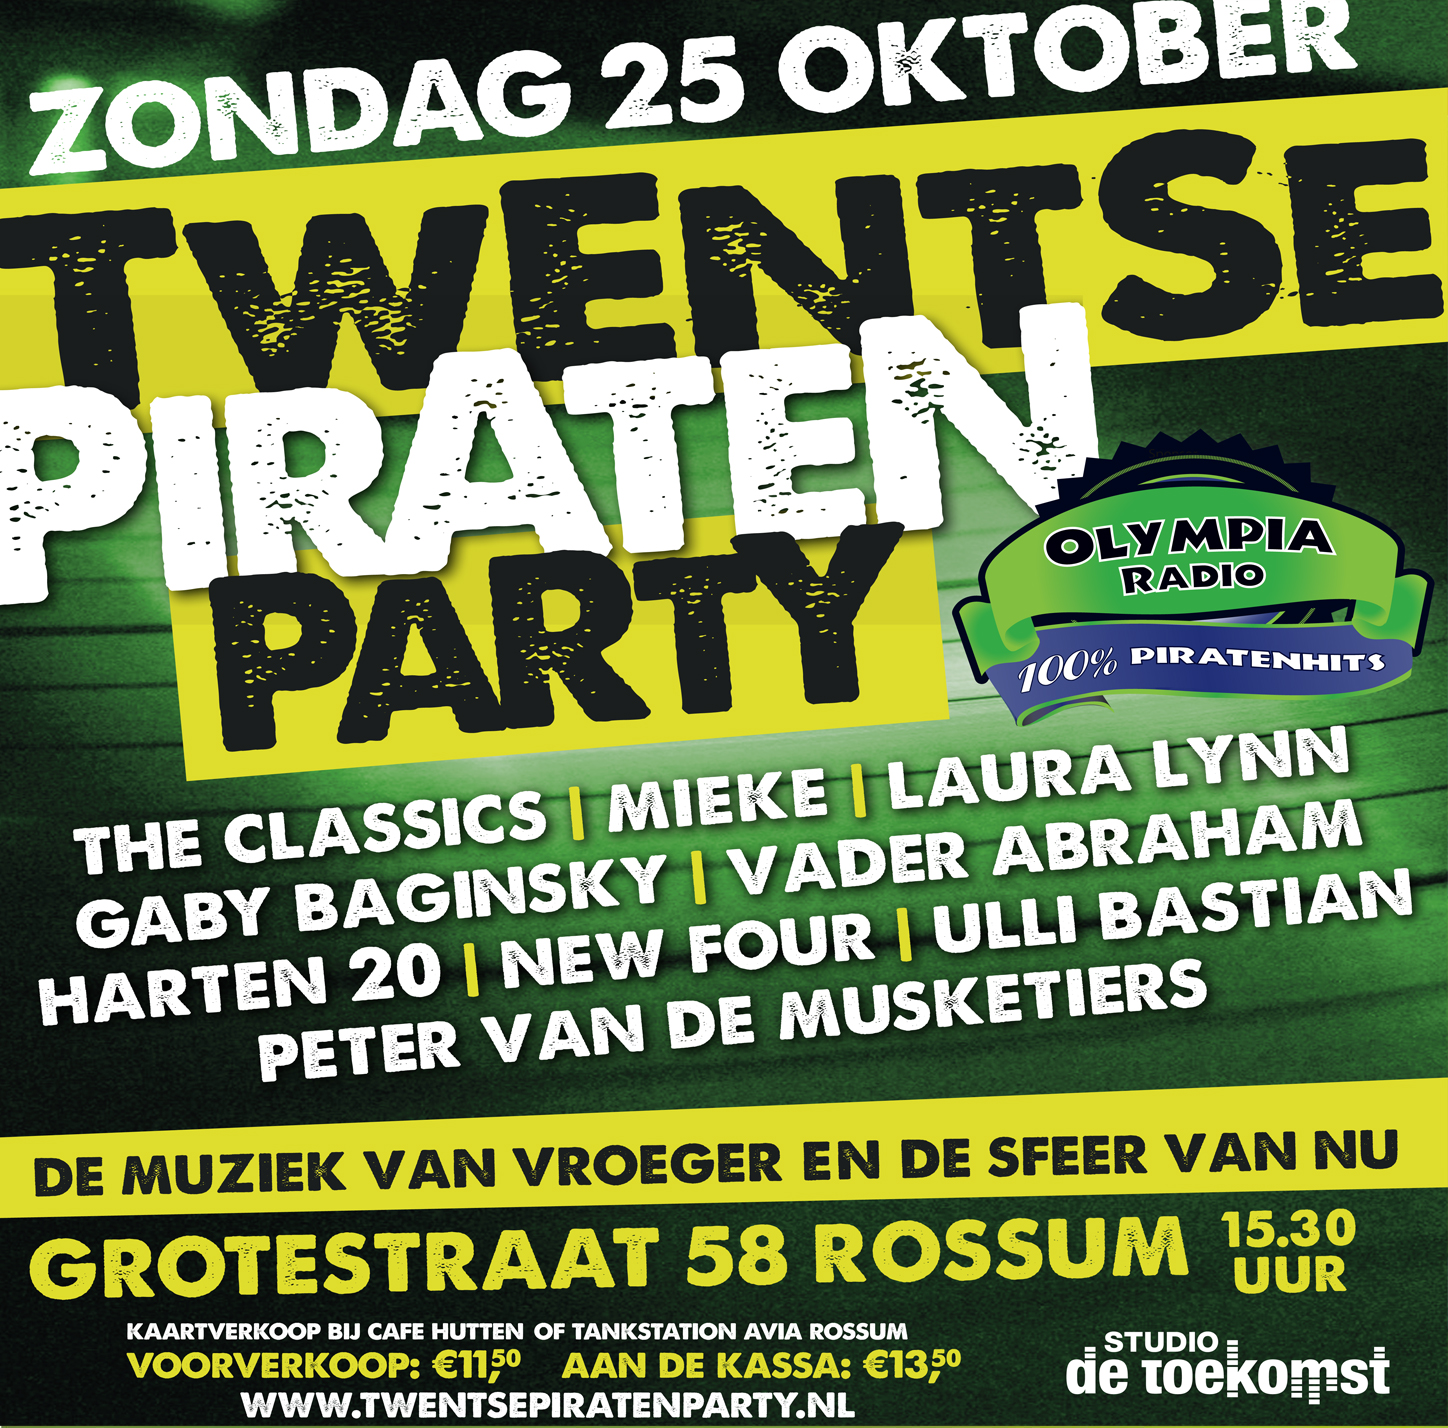 piraten feest in twente waar olympia radio sponsort is twentse piraten party